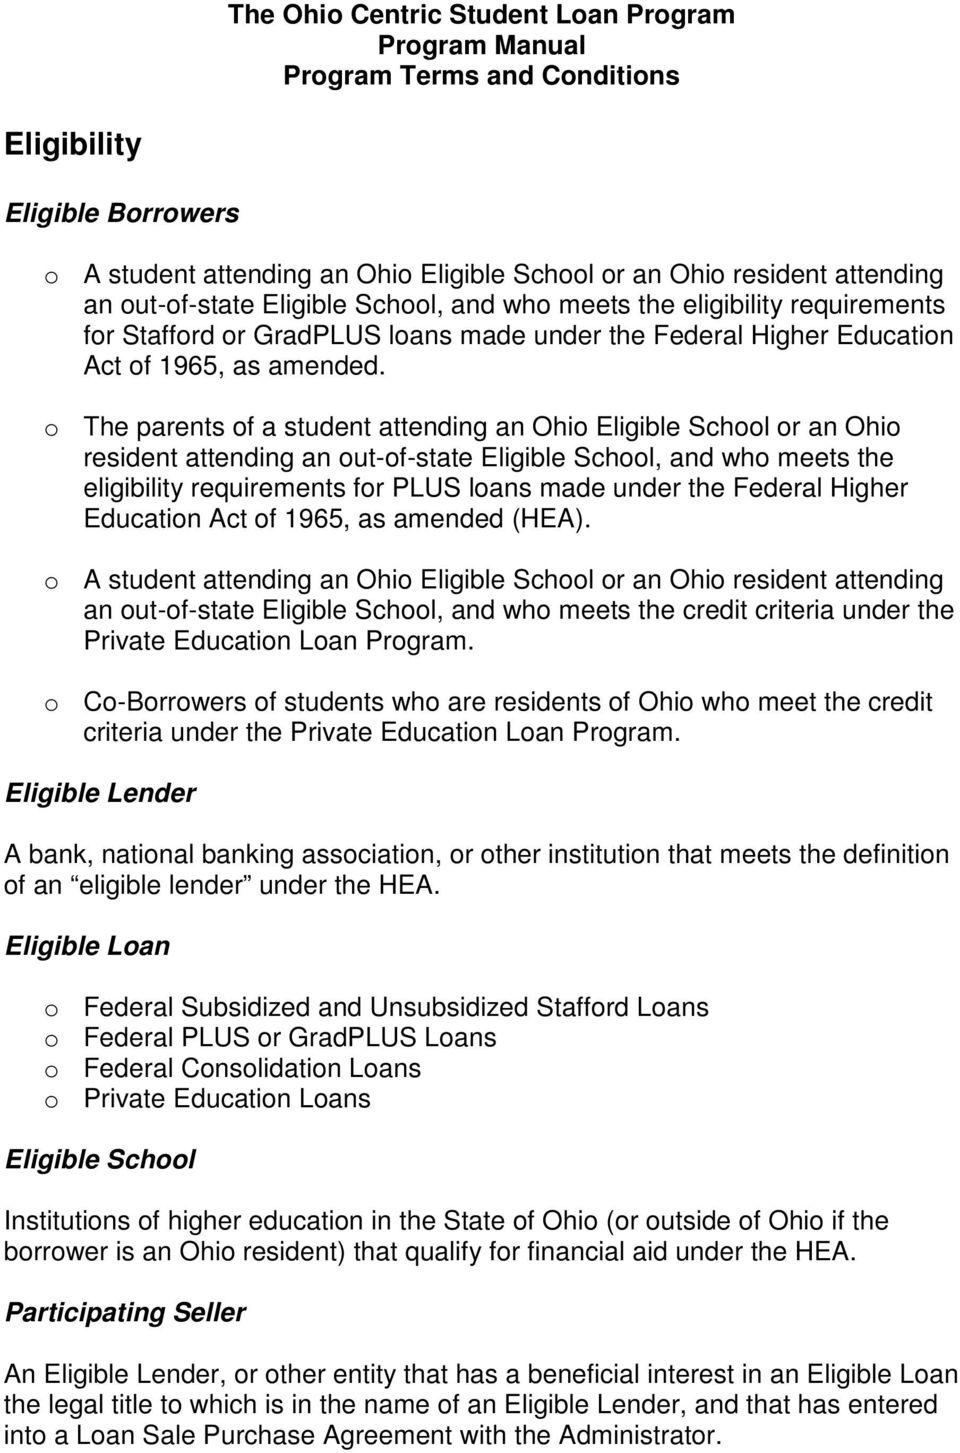 o The parents of a student attending an Ohio Eligible School or an Ohio resident attending an out-of-state Eligible School, and who meets the eligibility requirements for PLUS loans made under the